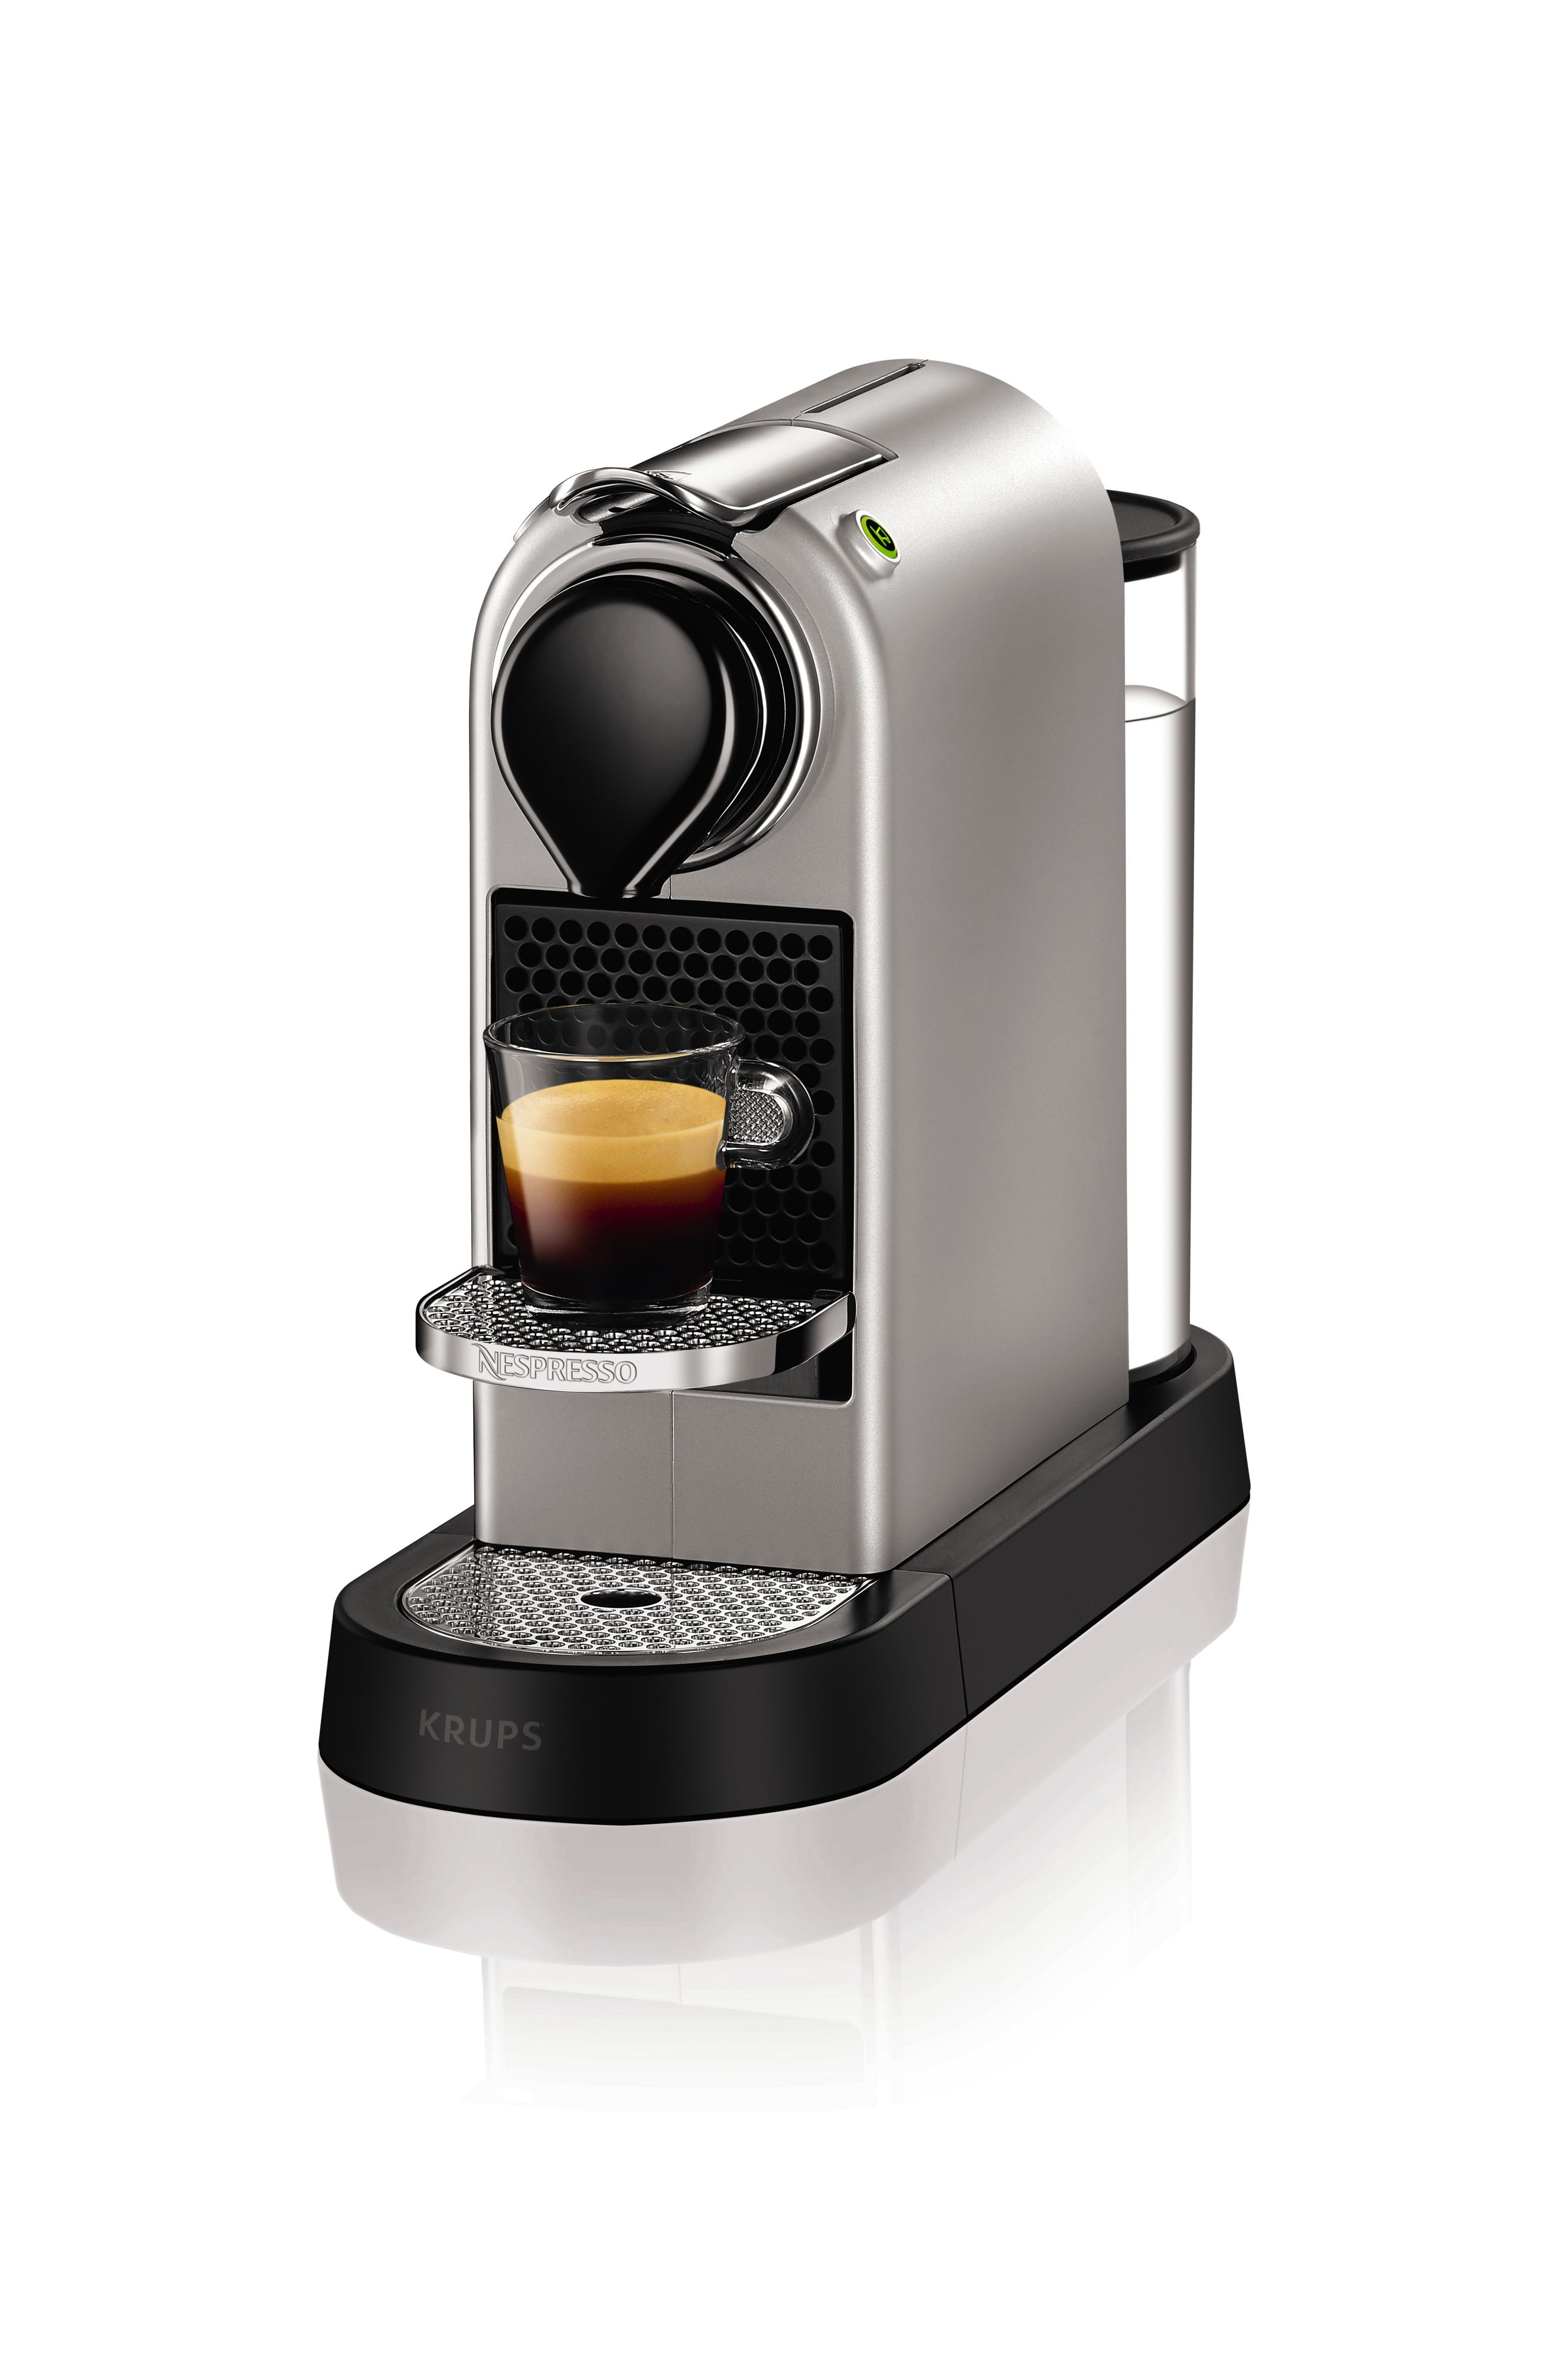 Krups Nespresso Citiz Machine 2016 Design Silver